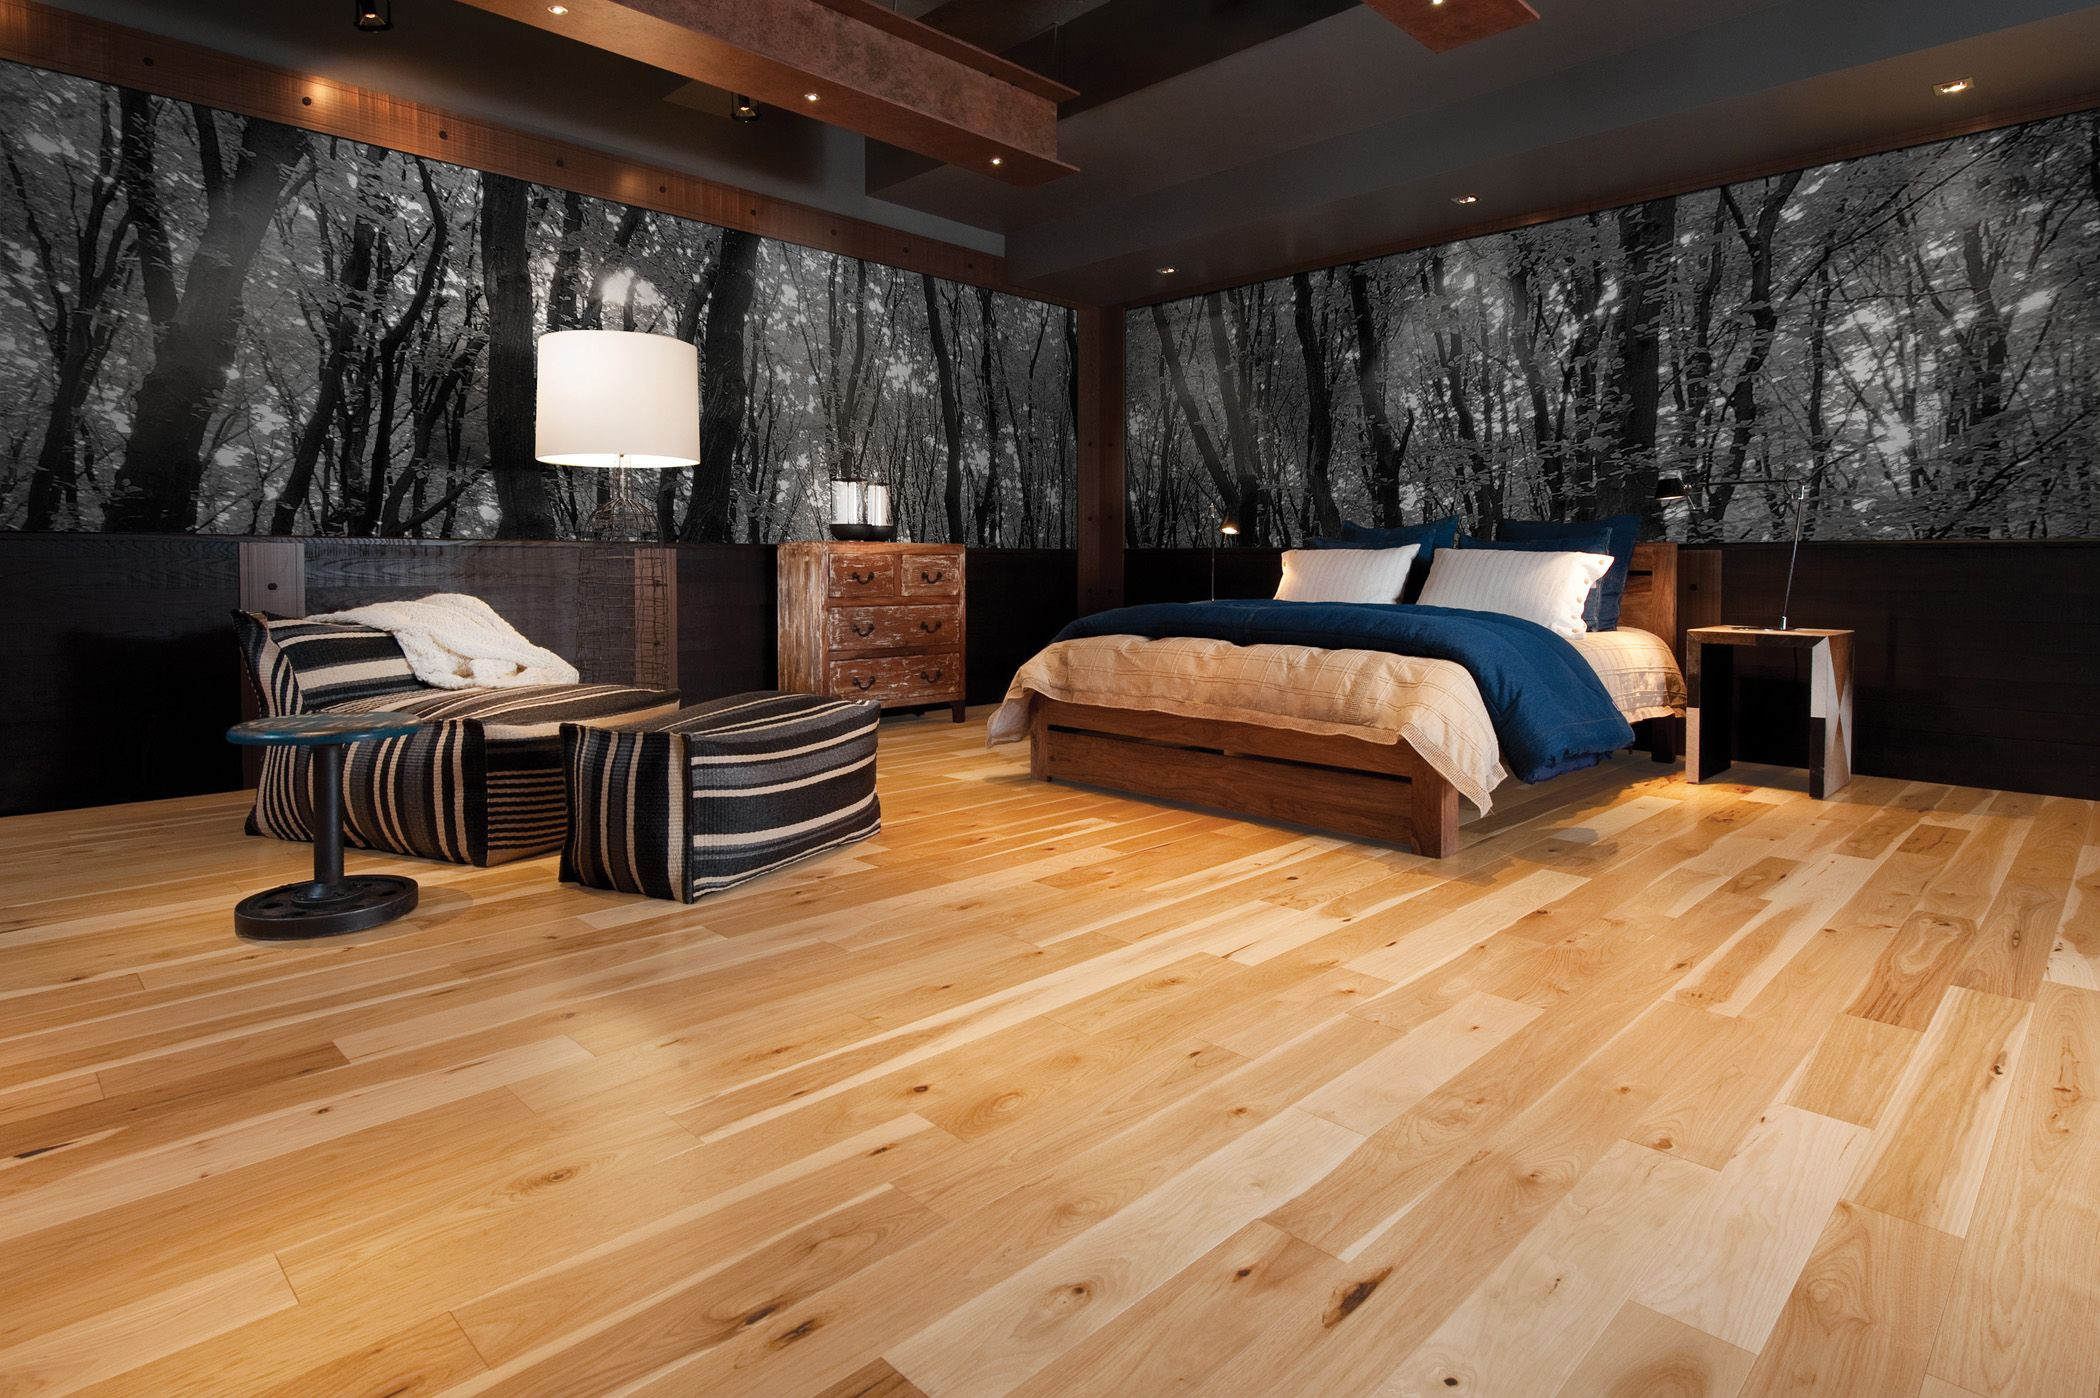 hardwood flooring mississauga dundas of naturalold hickory mirage hardwood floors available at oscars with naturalold hickory mirage hardwood floors available at oscars carpet one flooring